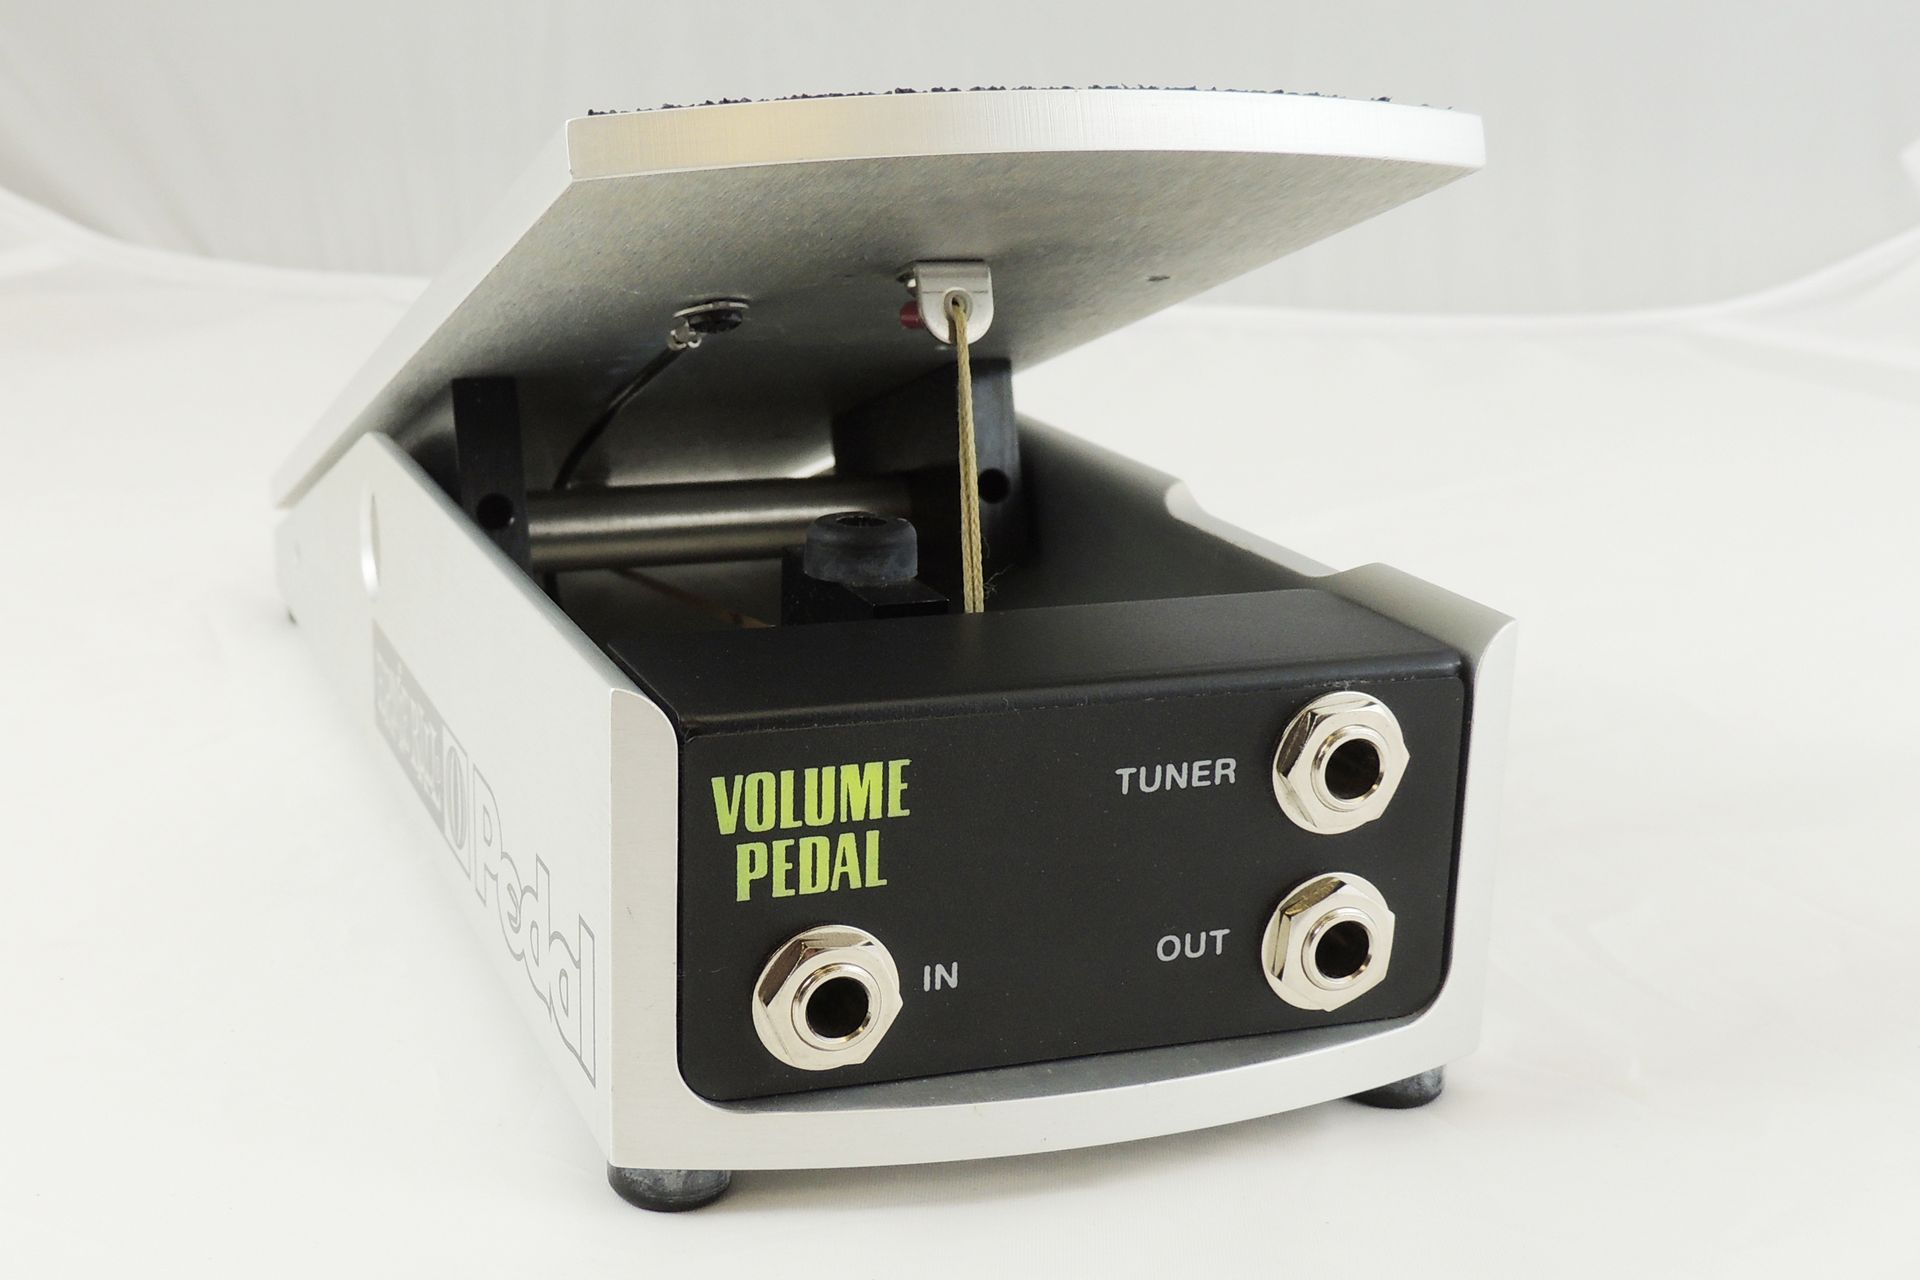 Ernie ball 6166 volume pedal for sale at Plasma Music